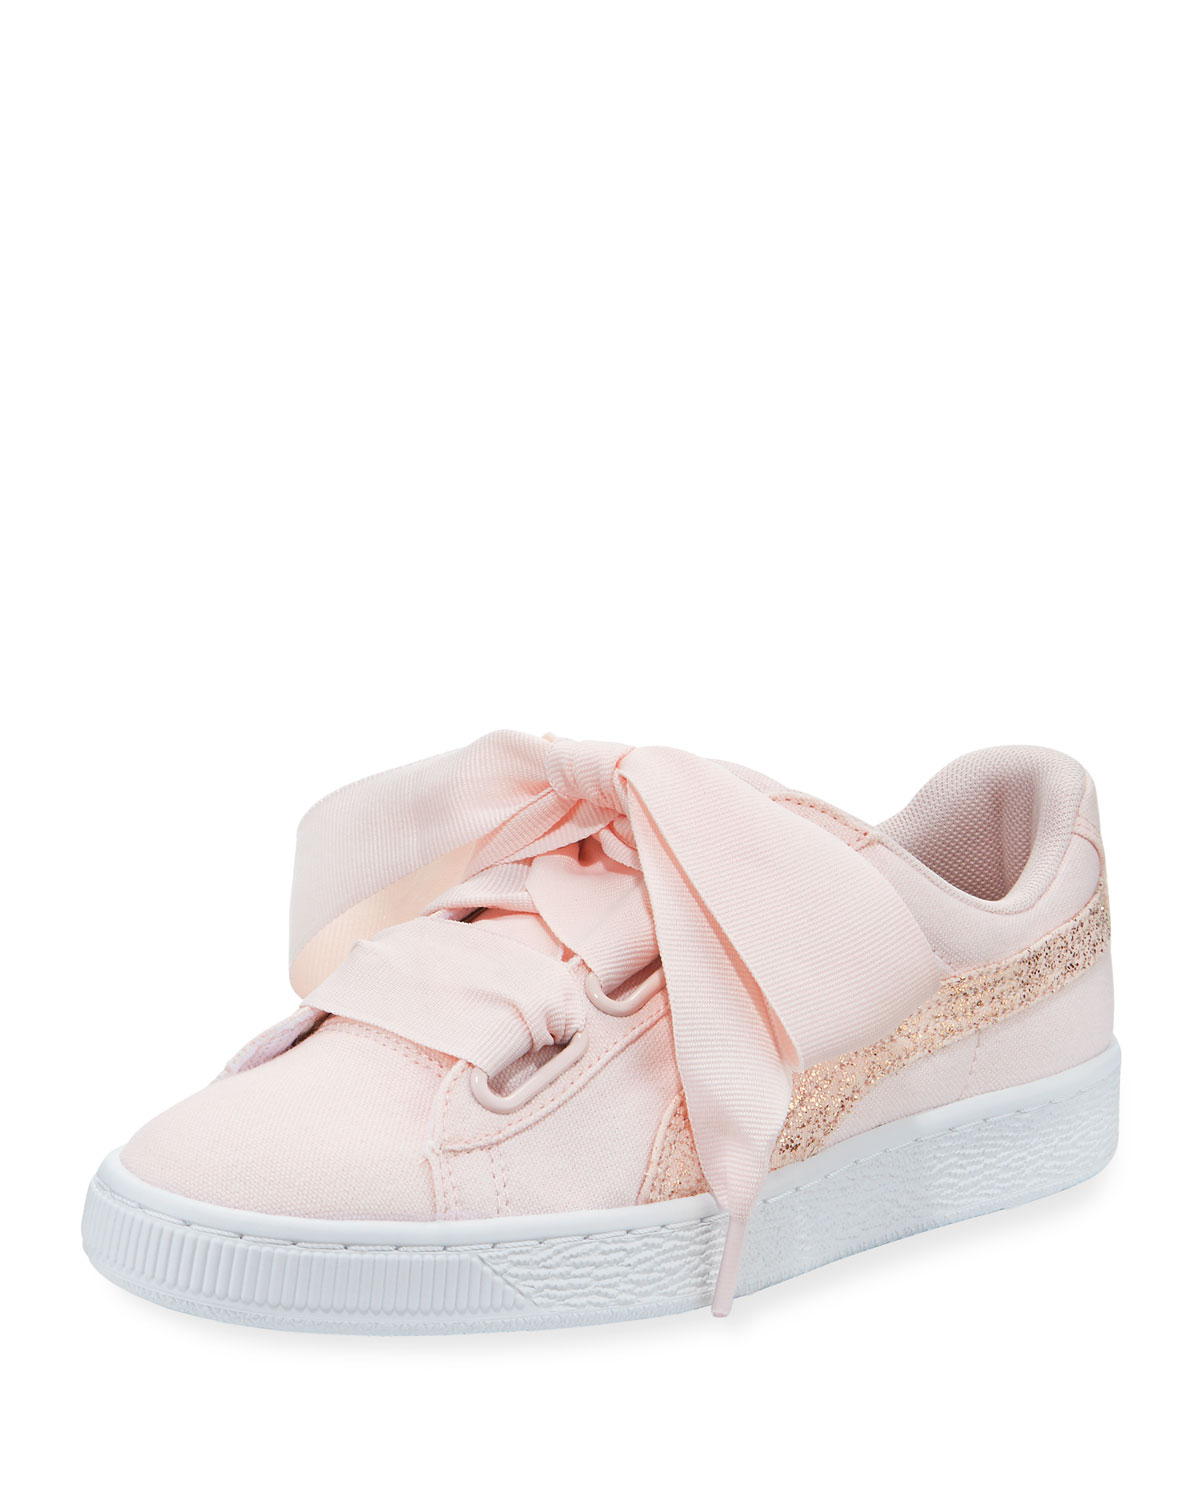 sports shoes f5194 d05c2 Puma Basket Heart Canvas Sneakers, Pearl White